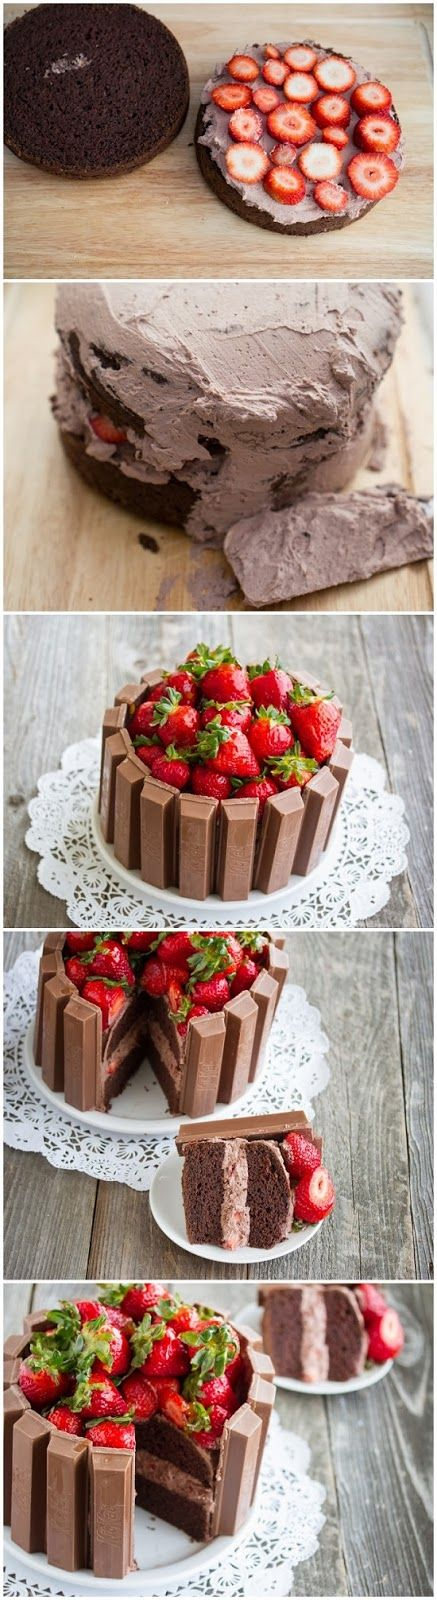 Strawberry Kit Kat Cake recipe - Yum!!! Such a family favorite! Perfect for Valentine's Day too!